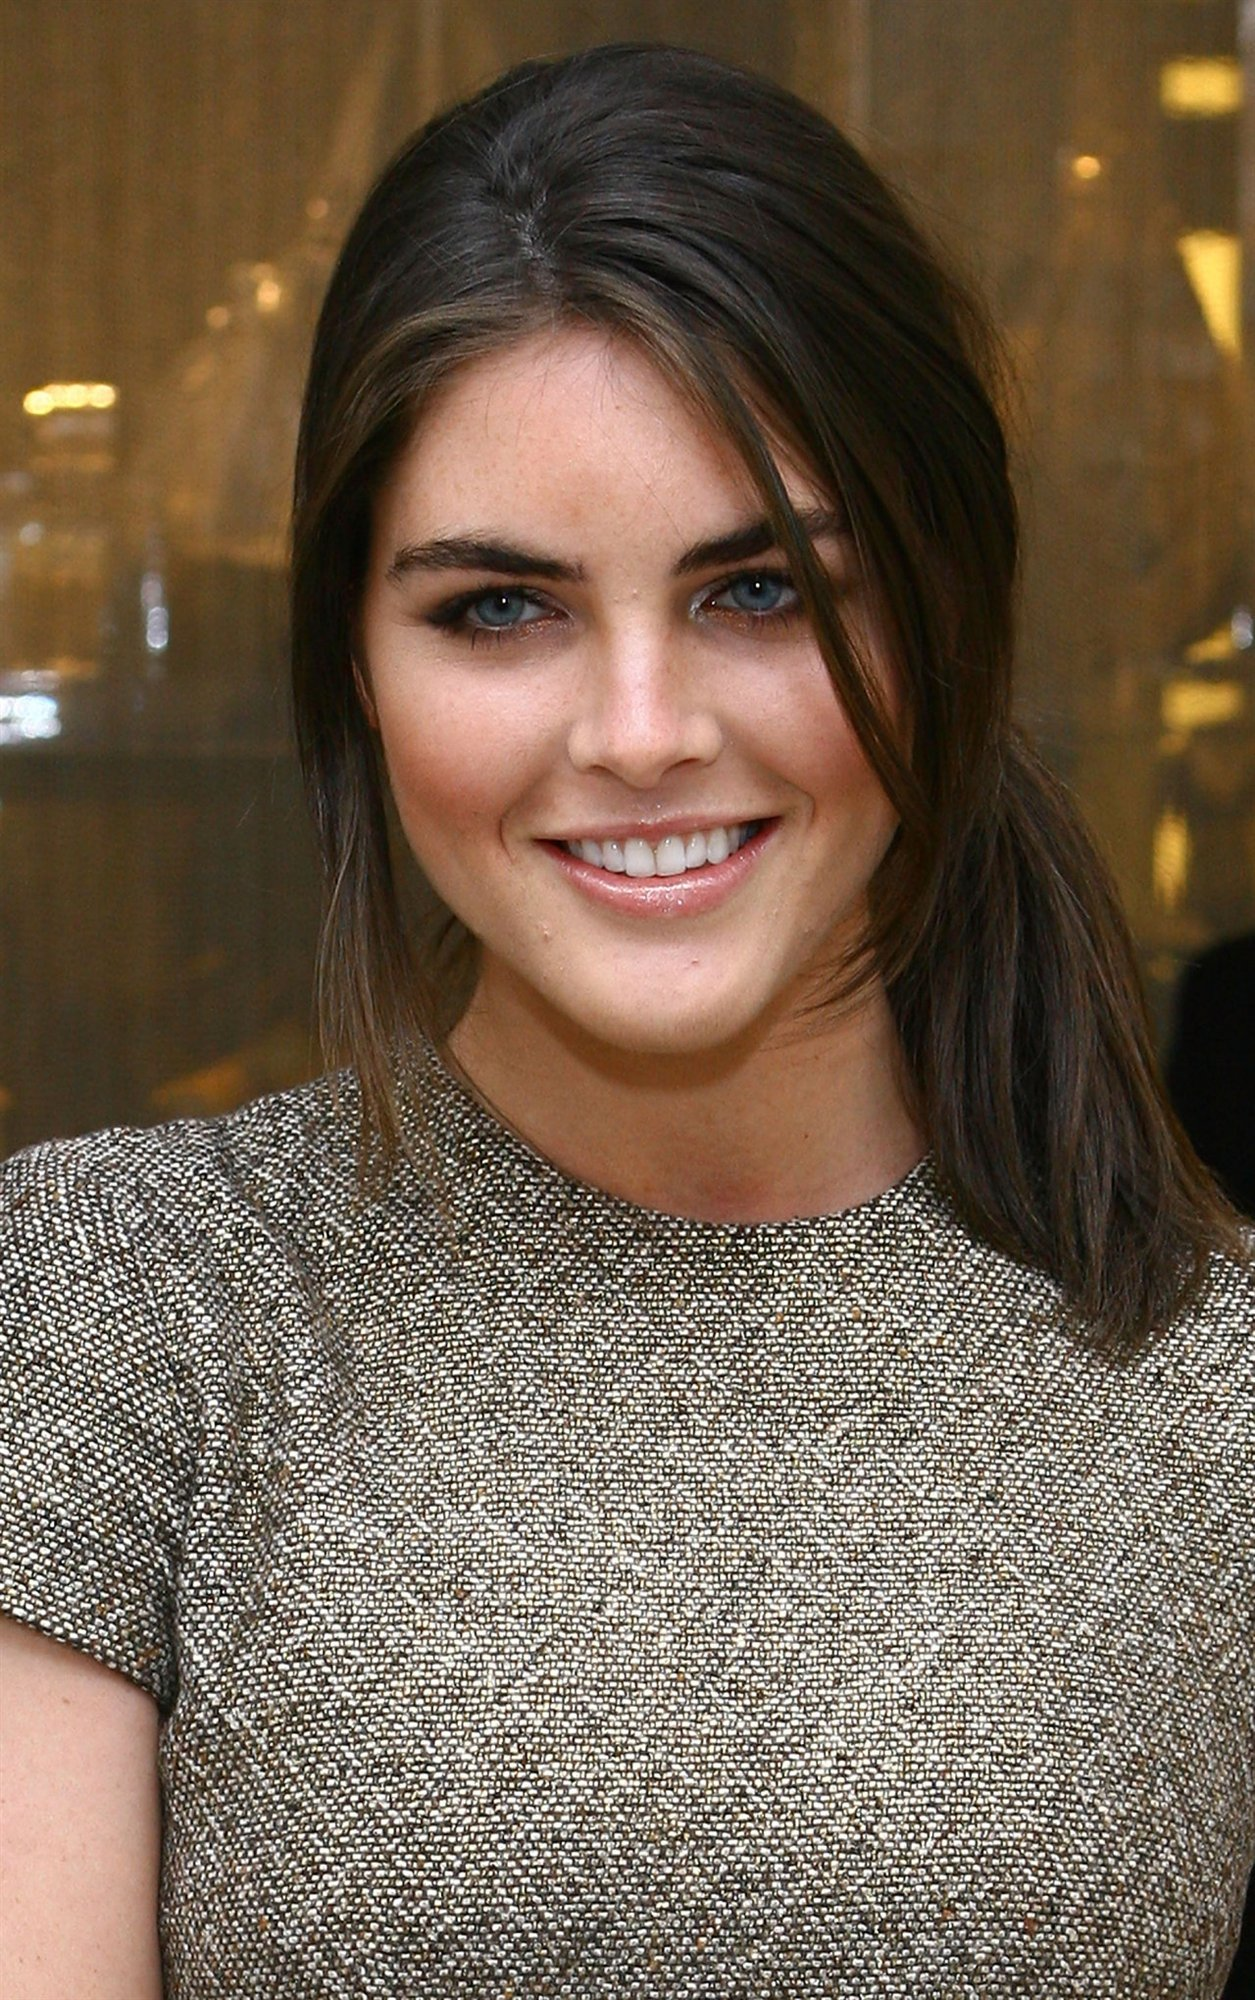 Hilary Rhoda leaked wallpapers